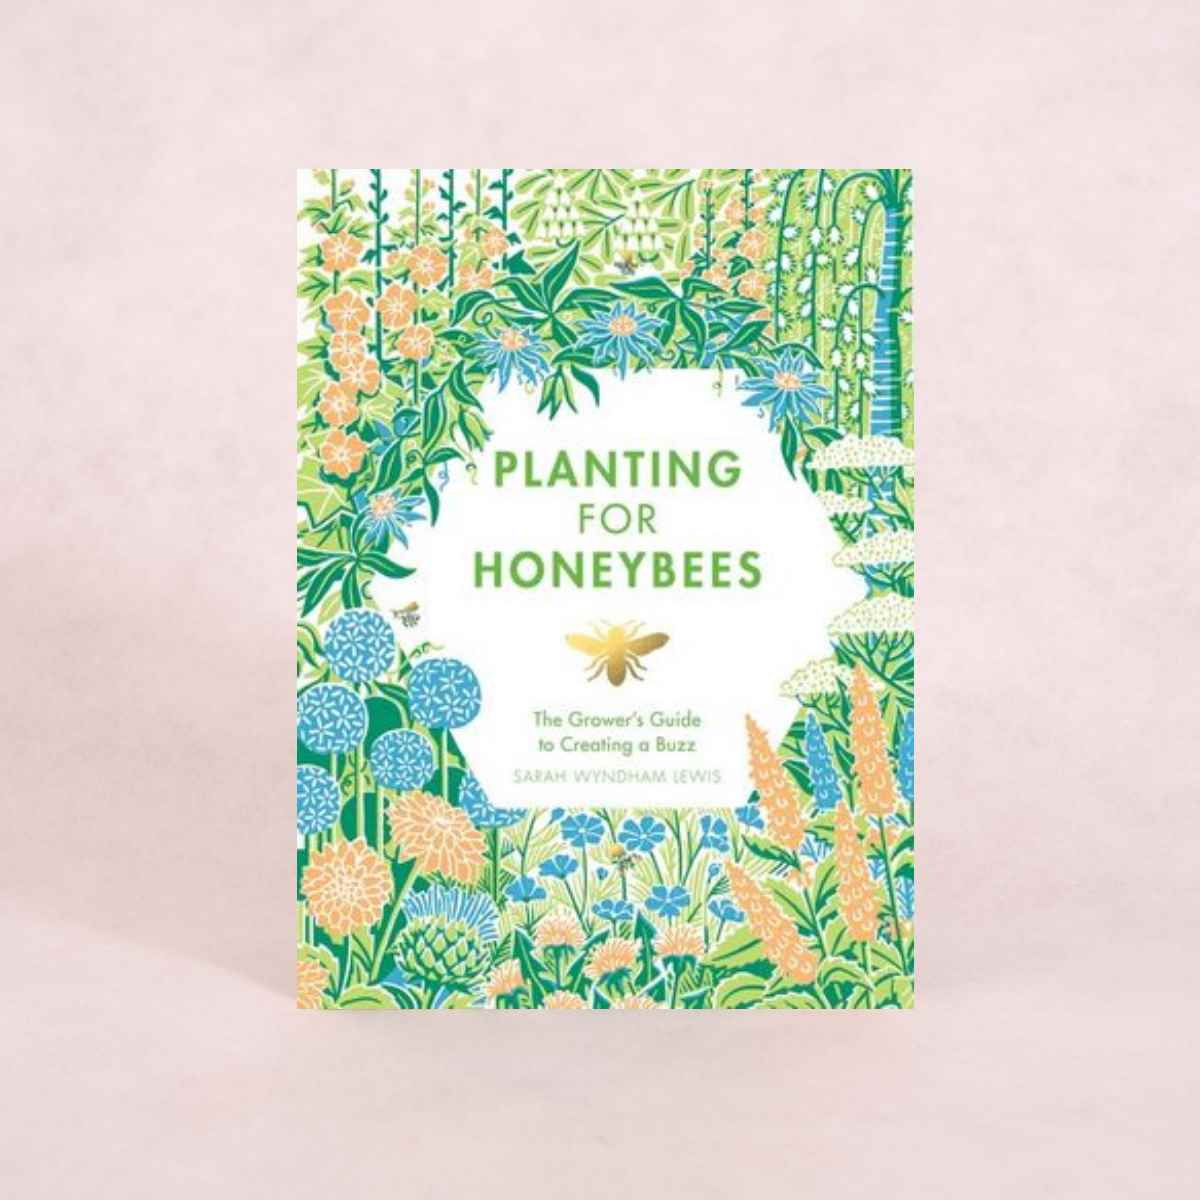 Planting for Honeybees | By Sarah Wyndham Lewis - Book - Throw Some Seeds - Australian gardening gifts and eco products online!